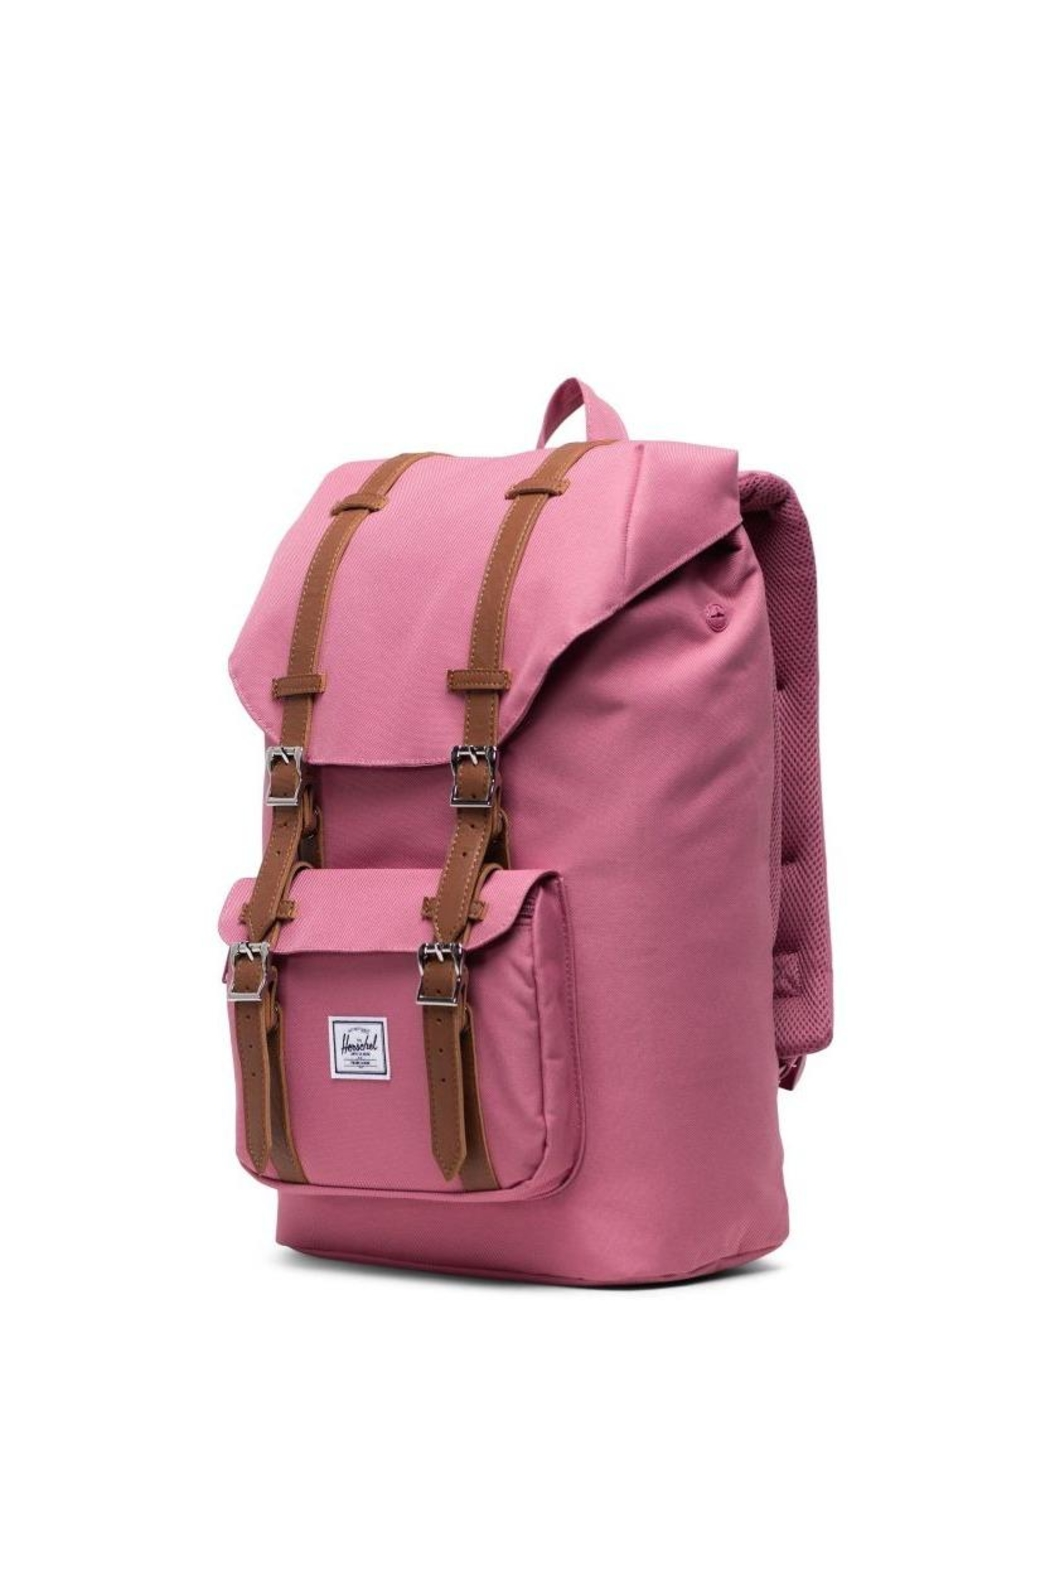 Herschel Supply Co. Mid-Sized Pink Backpack - Side Cropped Image